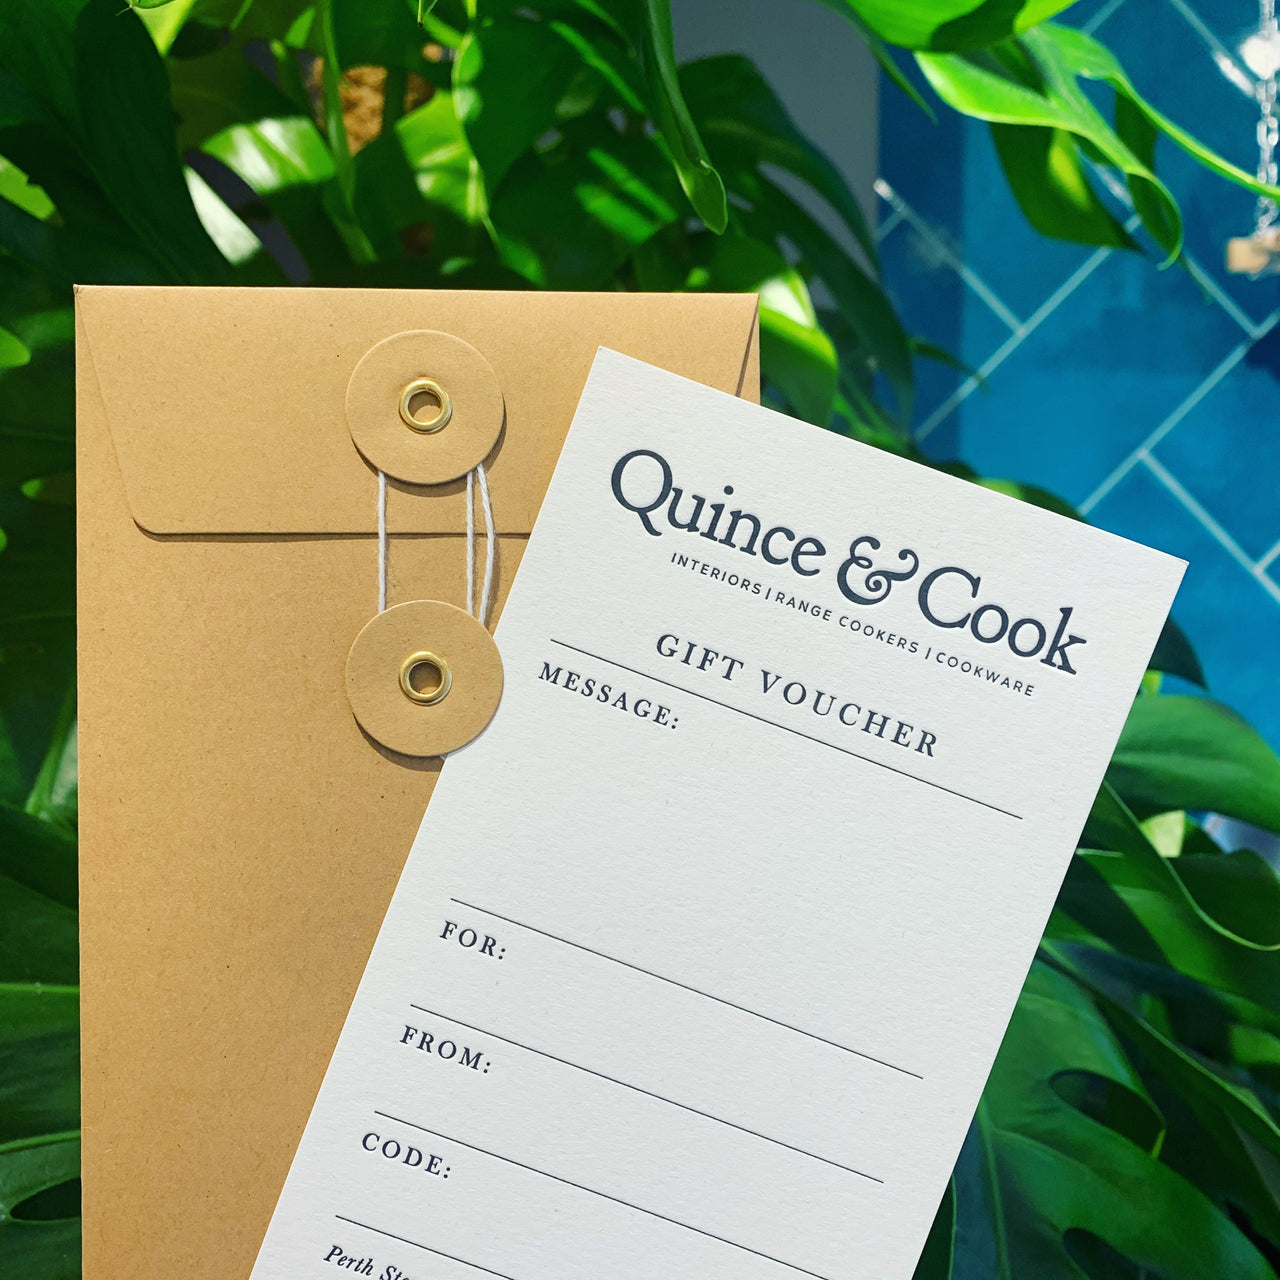 Quince & Cook Gift Vouchers - Sent by Post